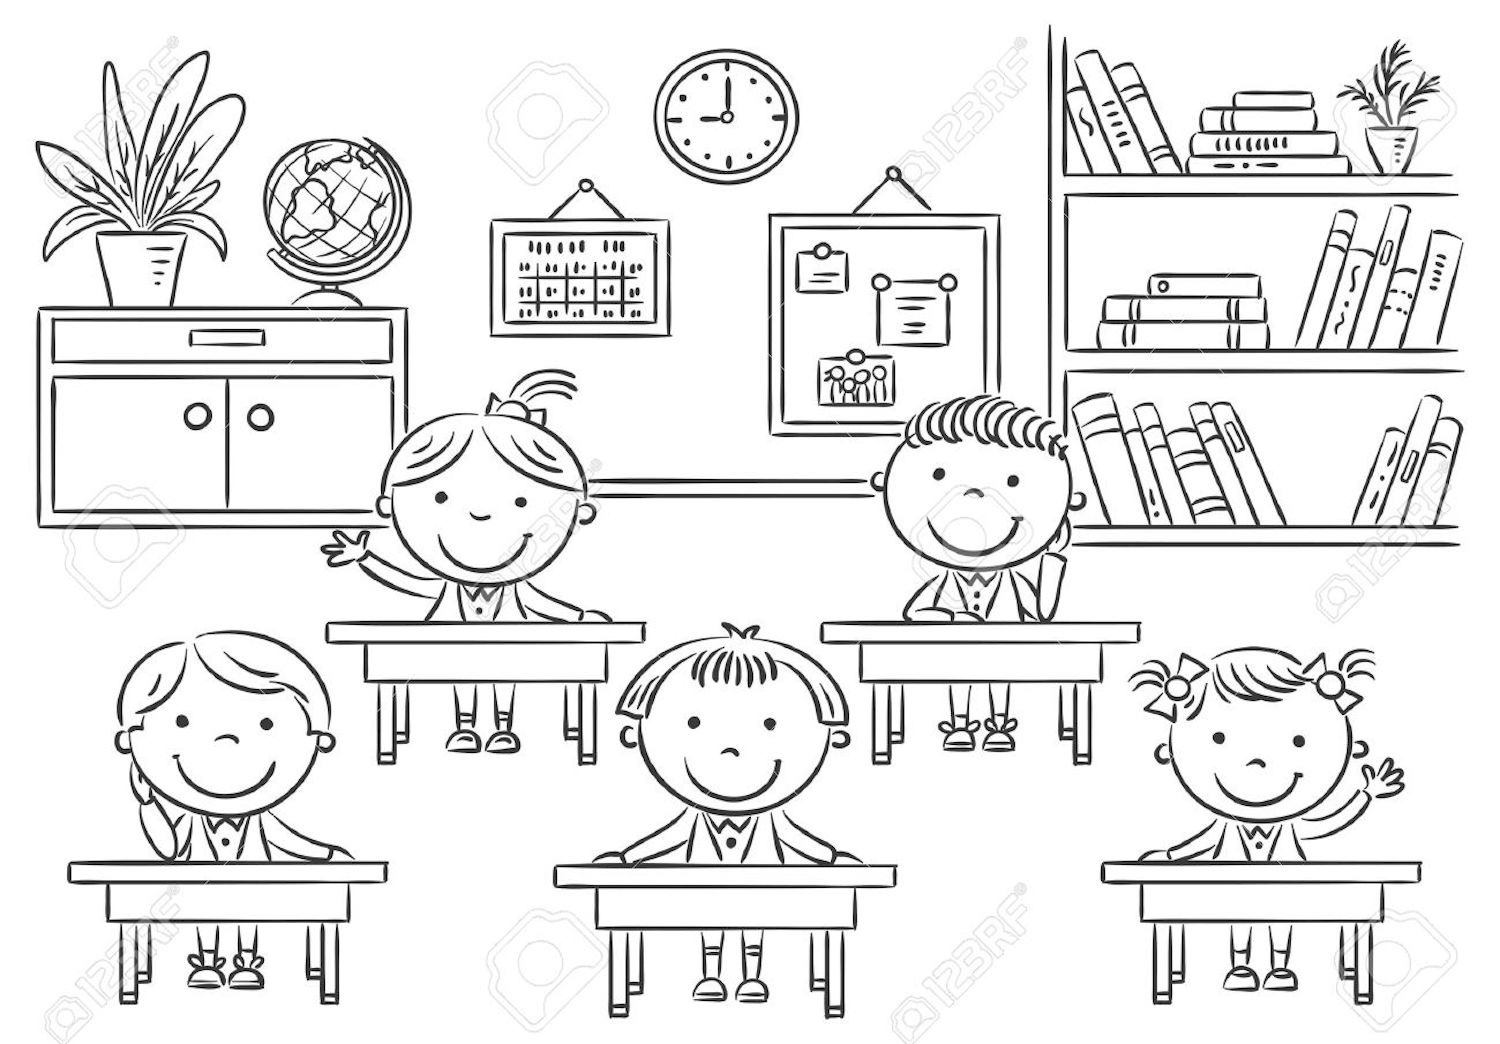 Teacher Coloring Pages - Best Coloring Pages For Kids |My Classroom Coloring Pages